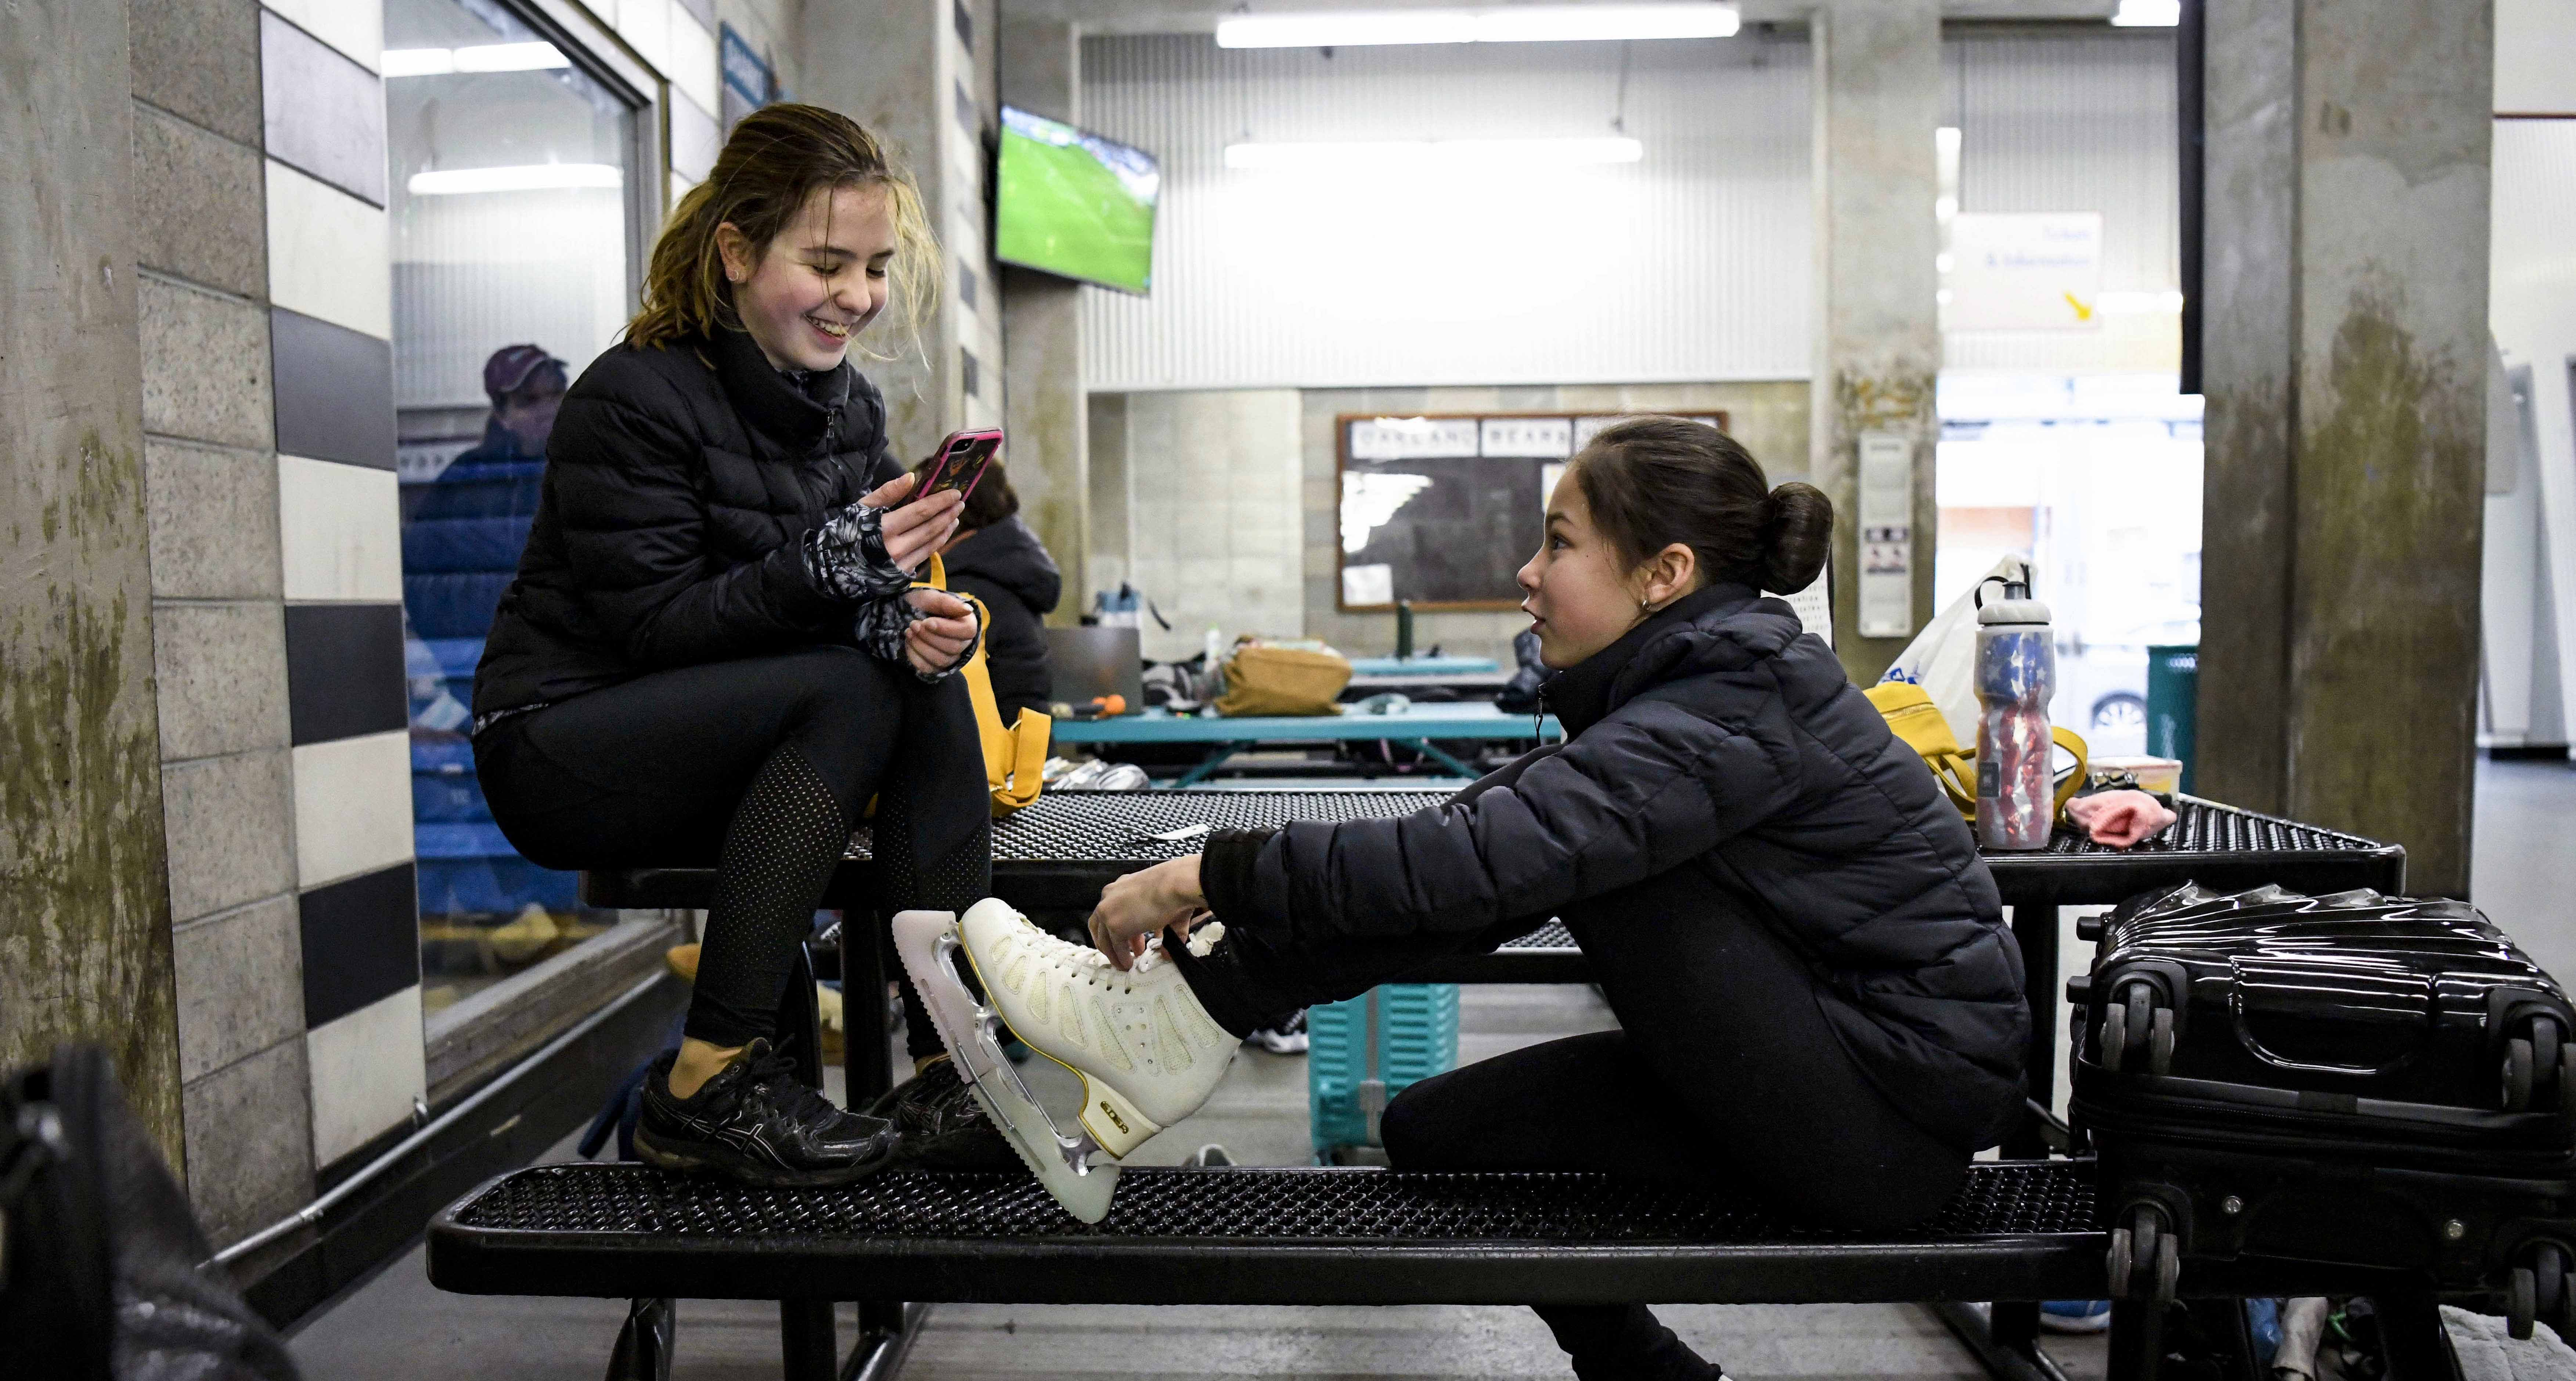 Alysa Liu laces up her skates before a practice session with her best friend Juliana Newton.